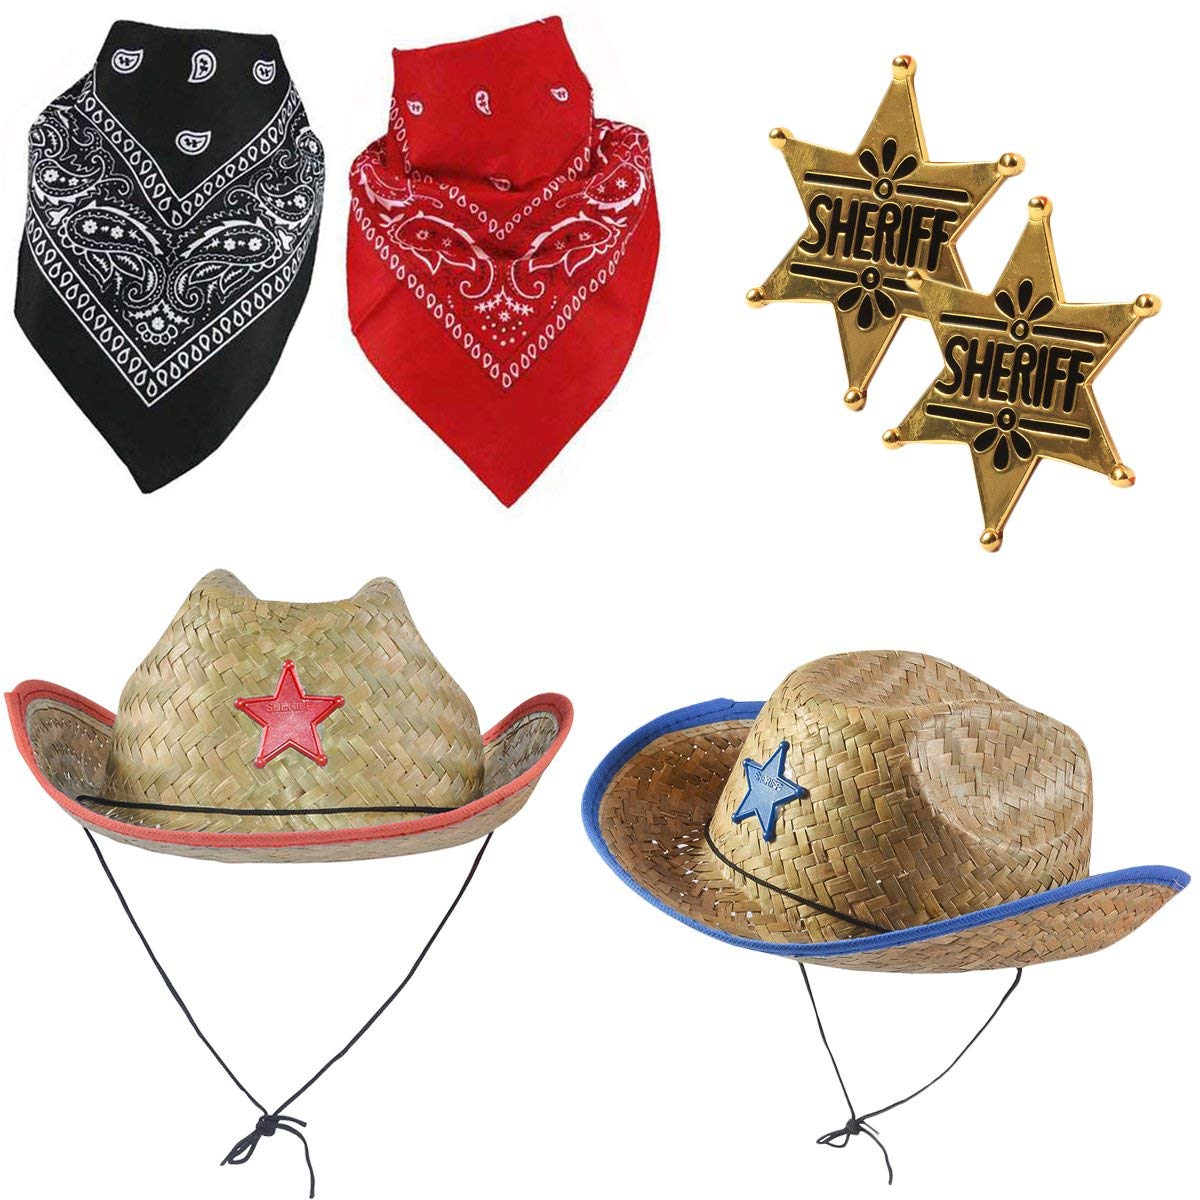 5342eab1ced0a Get Quotations · Funny Party Hats Cowboy Party Hats - Sheriff Costume for  Kids - Cowboy Hats - Dress